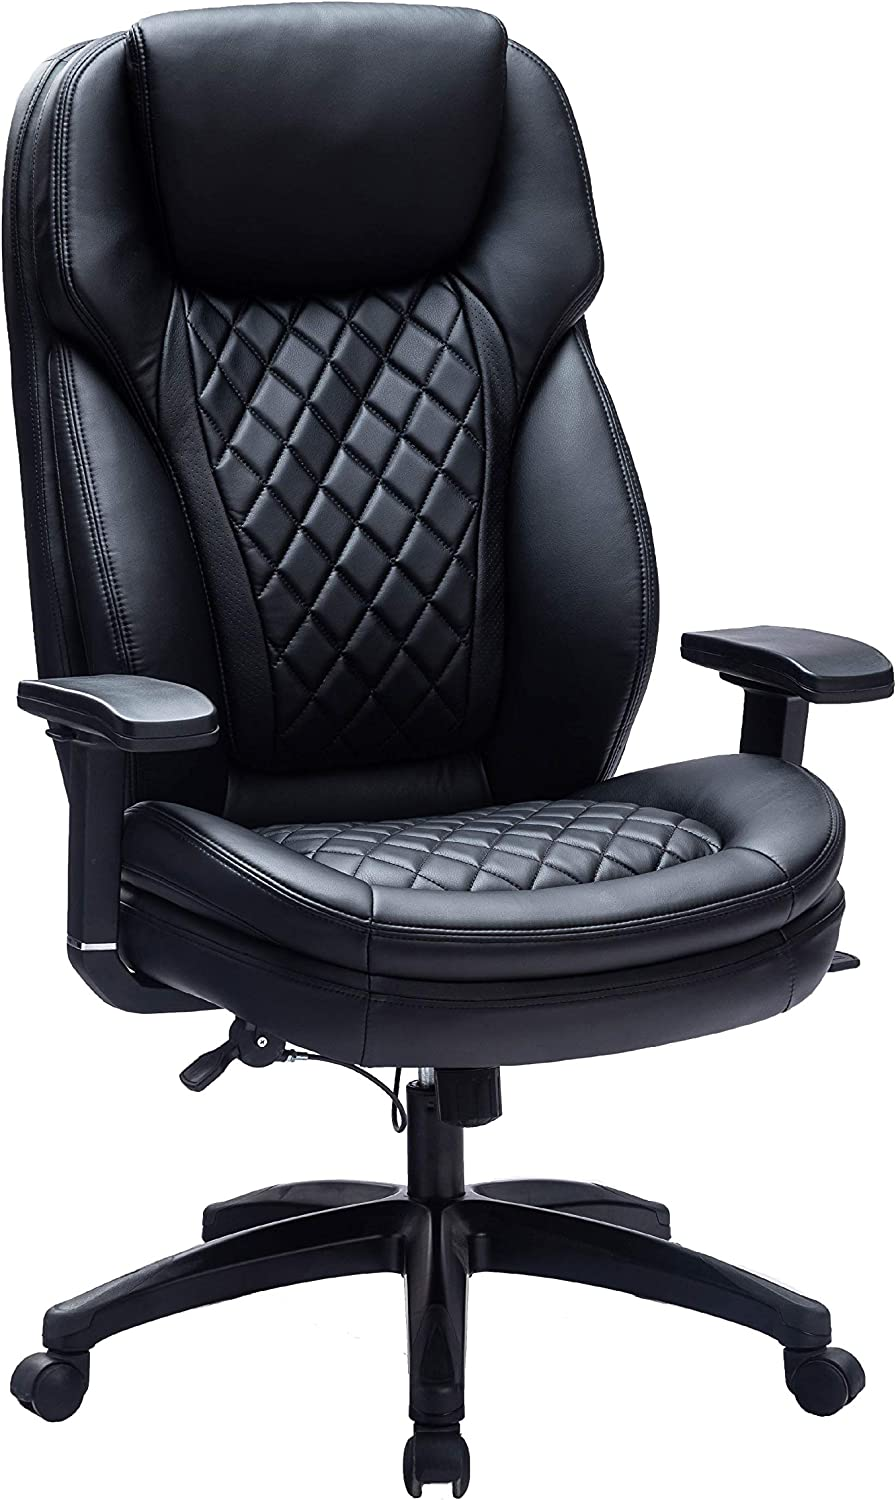 High Back Executive Office Chair Big and Tall Ergonomic Computer Desk Chair with Adjustable Swivel Executive Chair - Bonded Leather Chair with Build-in Headrest for Adults (Black-9107)